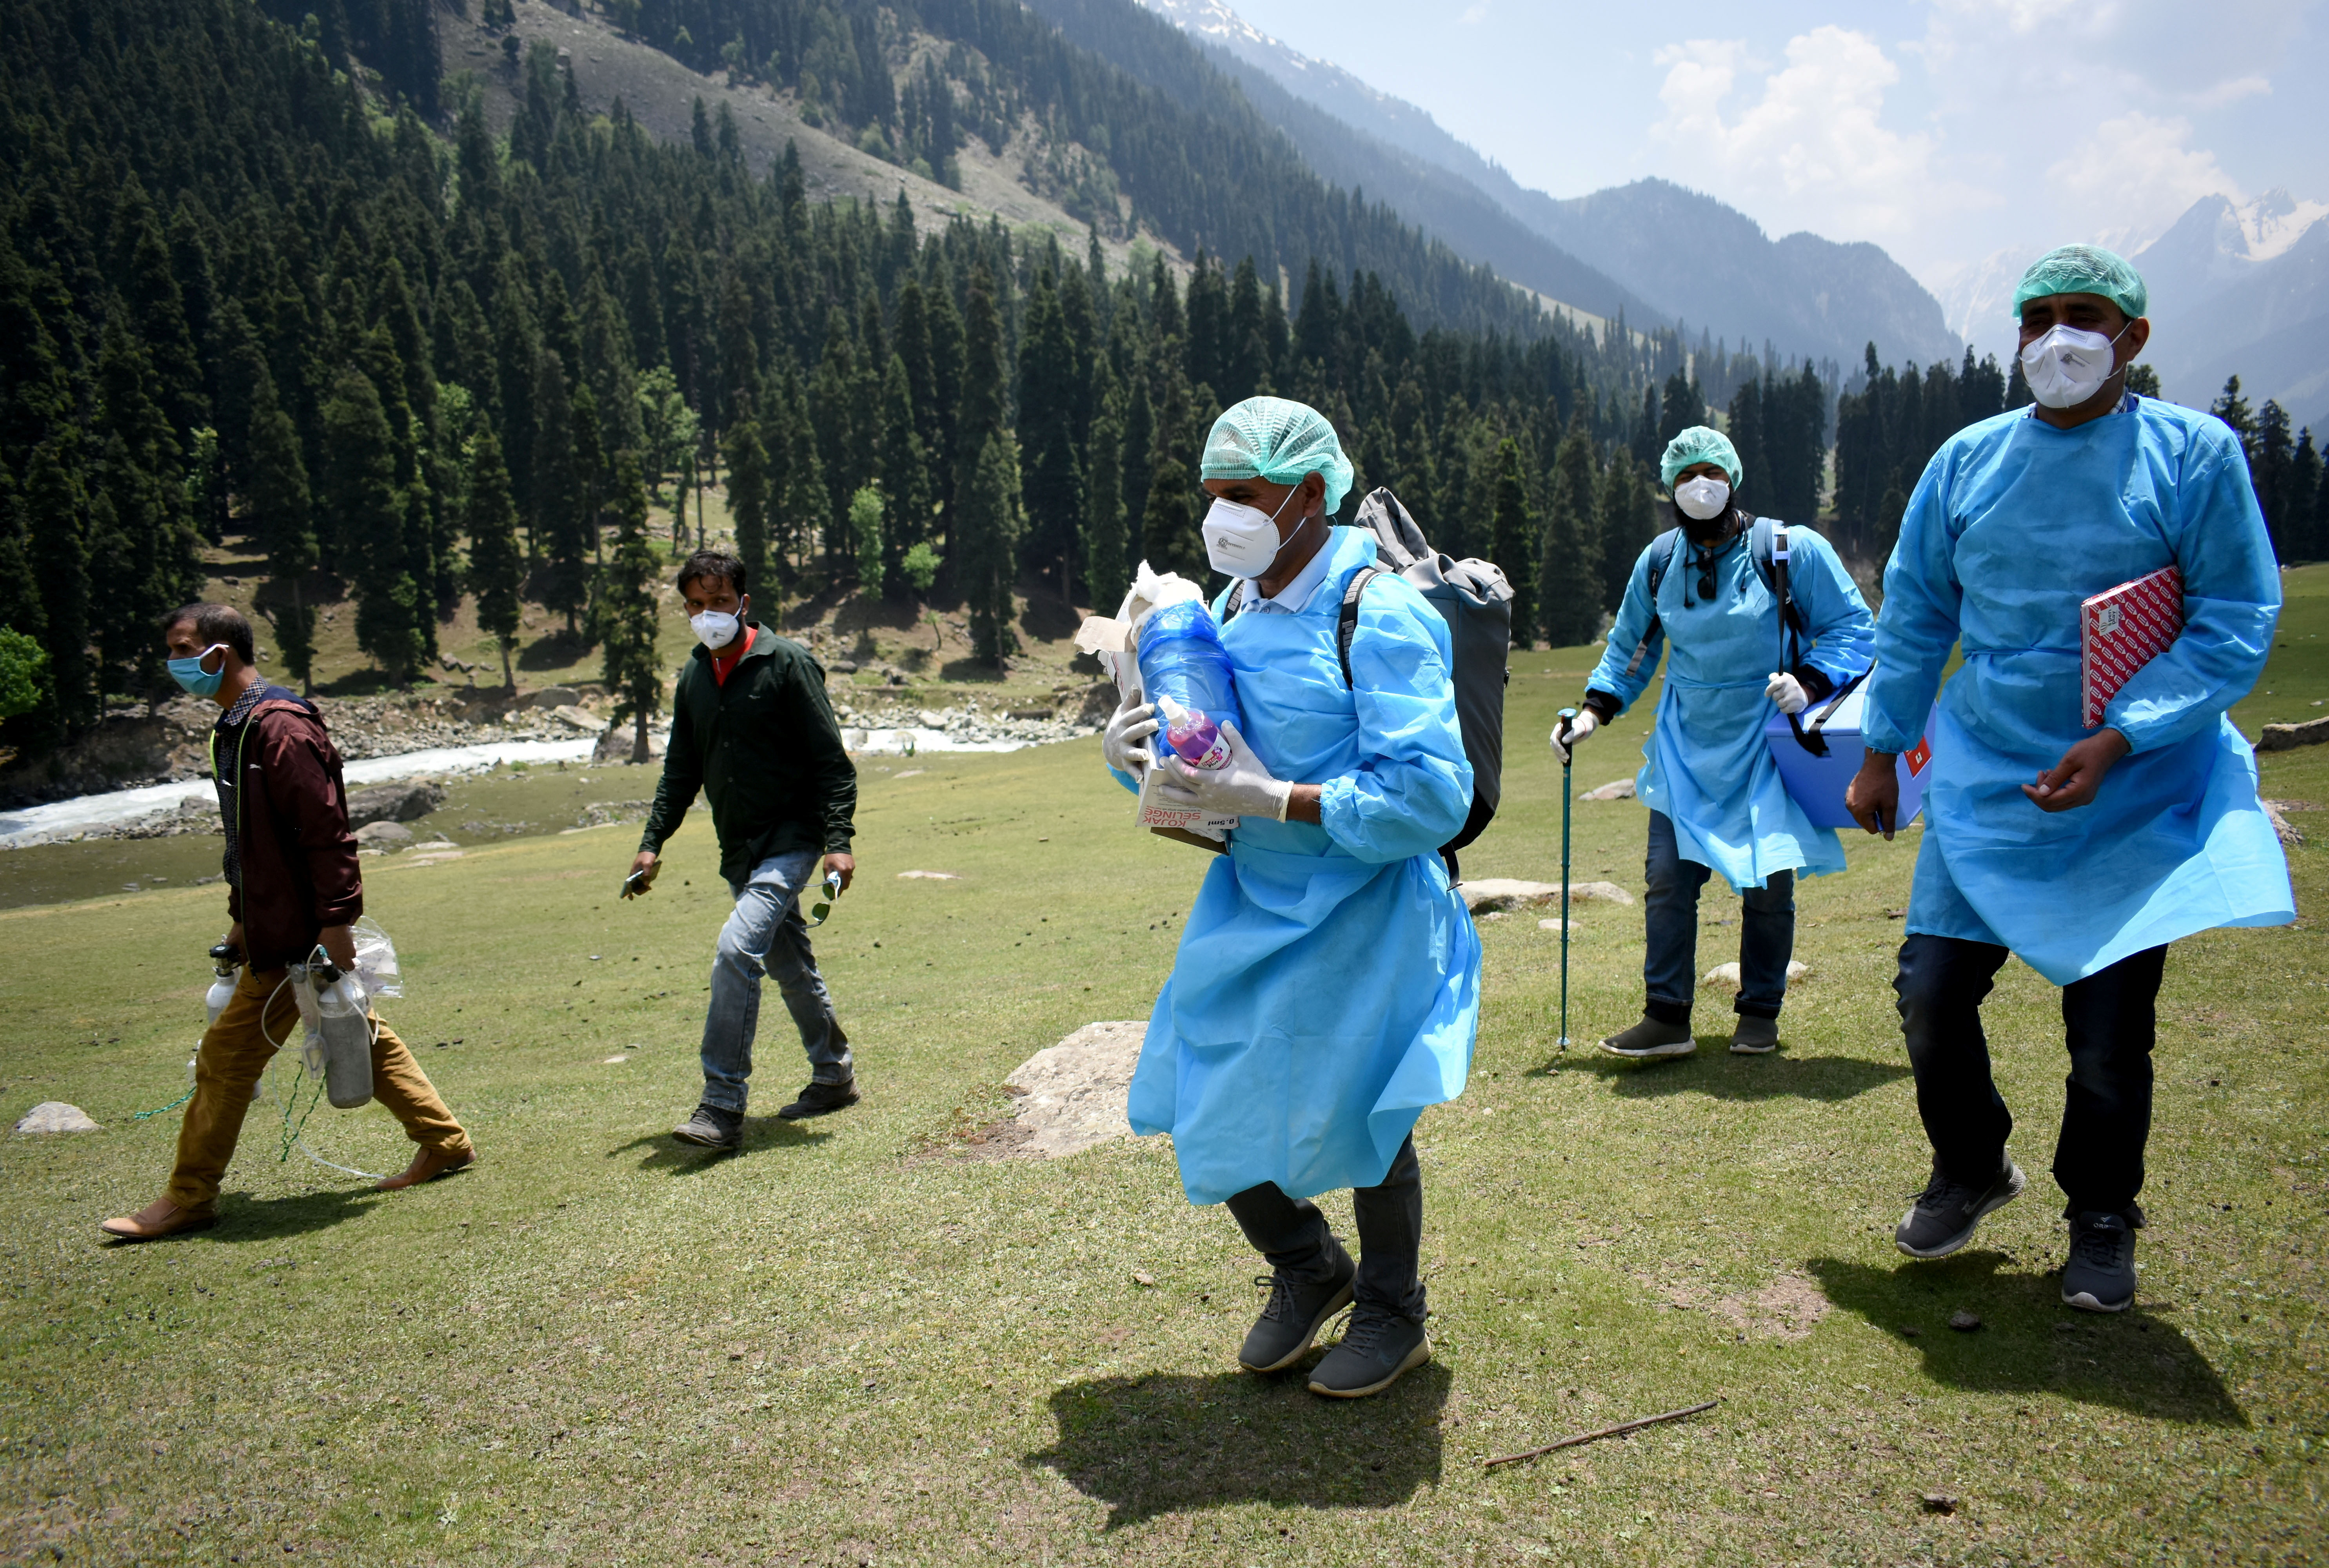 Healthcare workers trek to inoculate shepherds with COVISHIELD, a coronavirus disease (COVID-19) vaccine manufactured by Serum Institute of India, during a vaccination drive at Lidderwat near scenic Pahalgam in south Kashmir's Anantnag district, June 10, 2021. Picture taken June 10, 2021. REUTERS/Sanna Irshad Mattoo - RC2OXN920F8Q